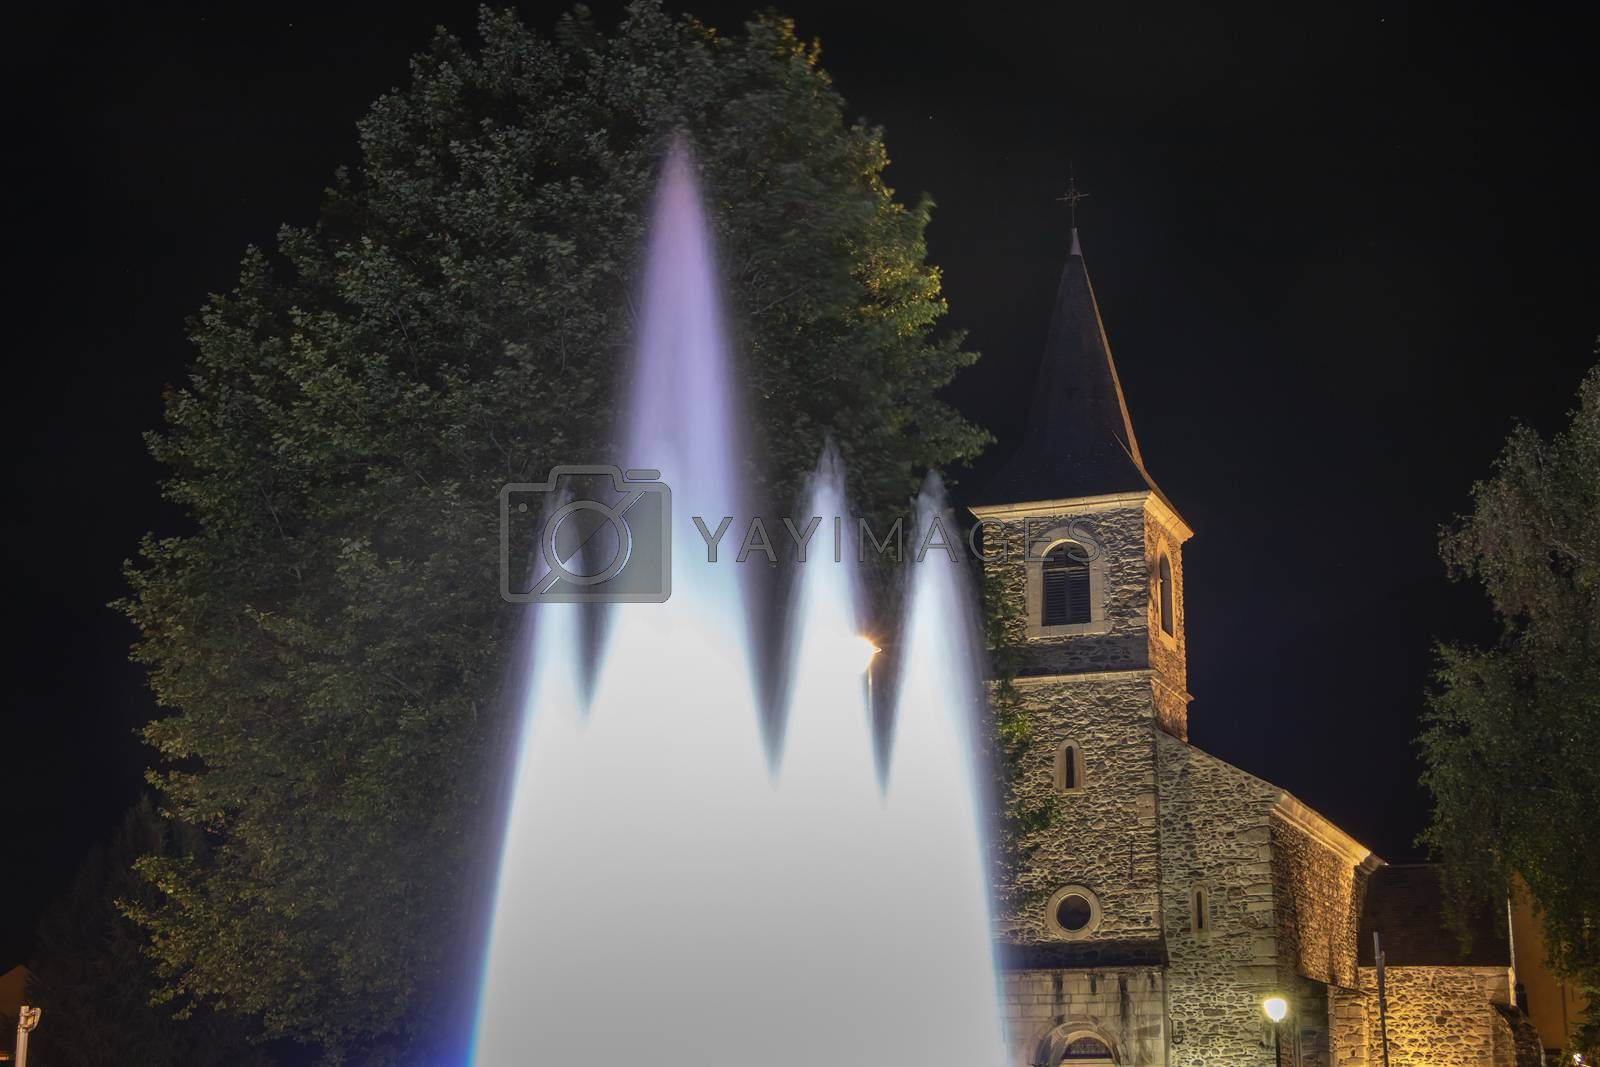 Saint Lary Soulan, France - August 21, 2018: Architecture detail of the Sainte Marie chapel by night on a summer day